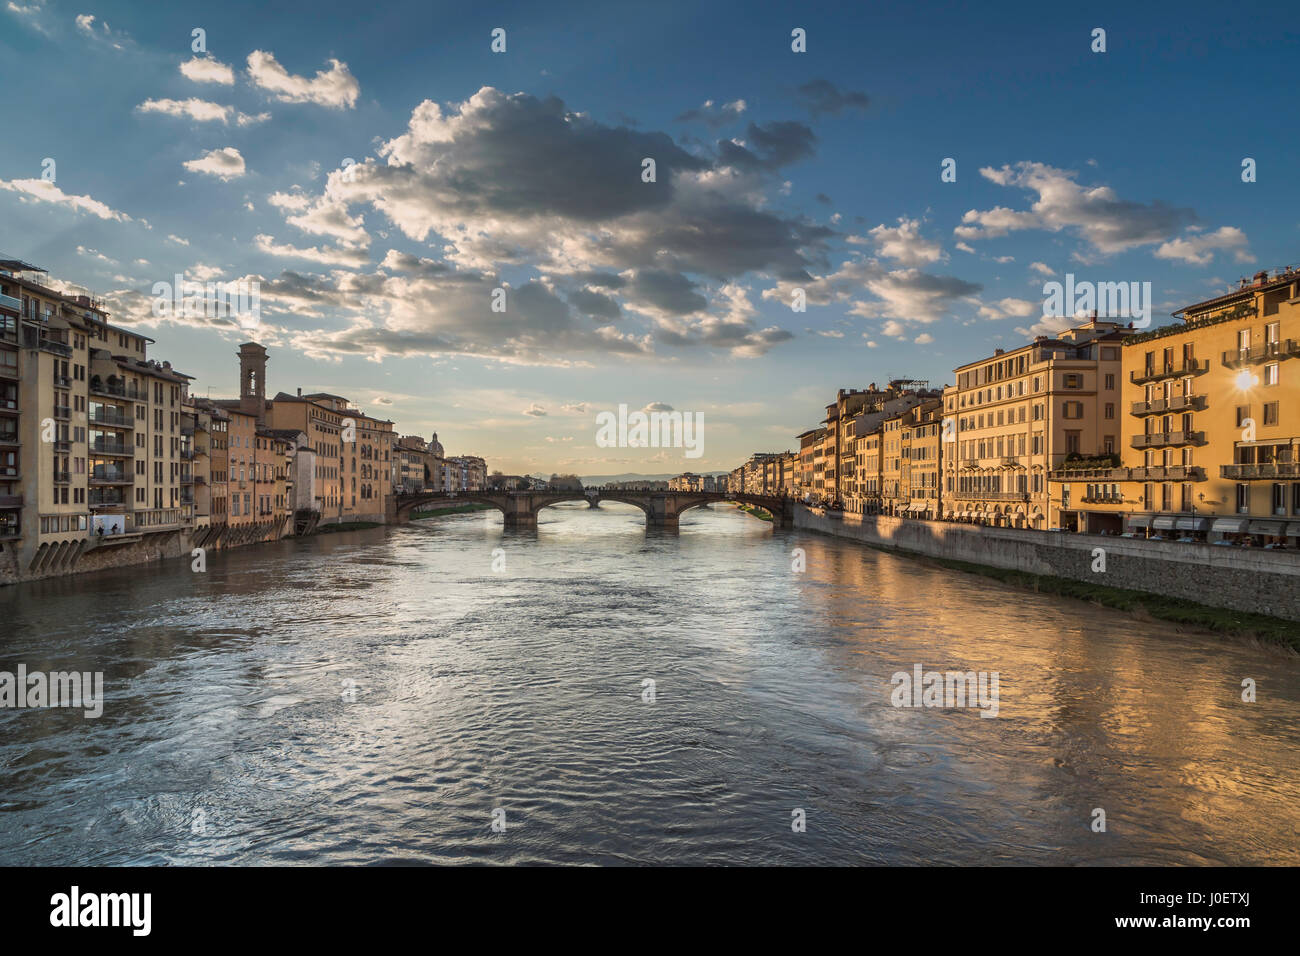 View from the Ponte Vecchio in Florence on a winter day - Stock Image